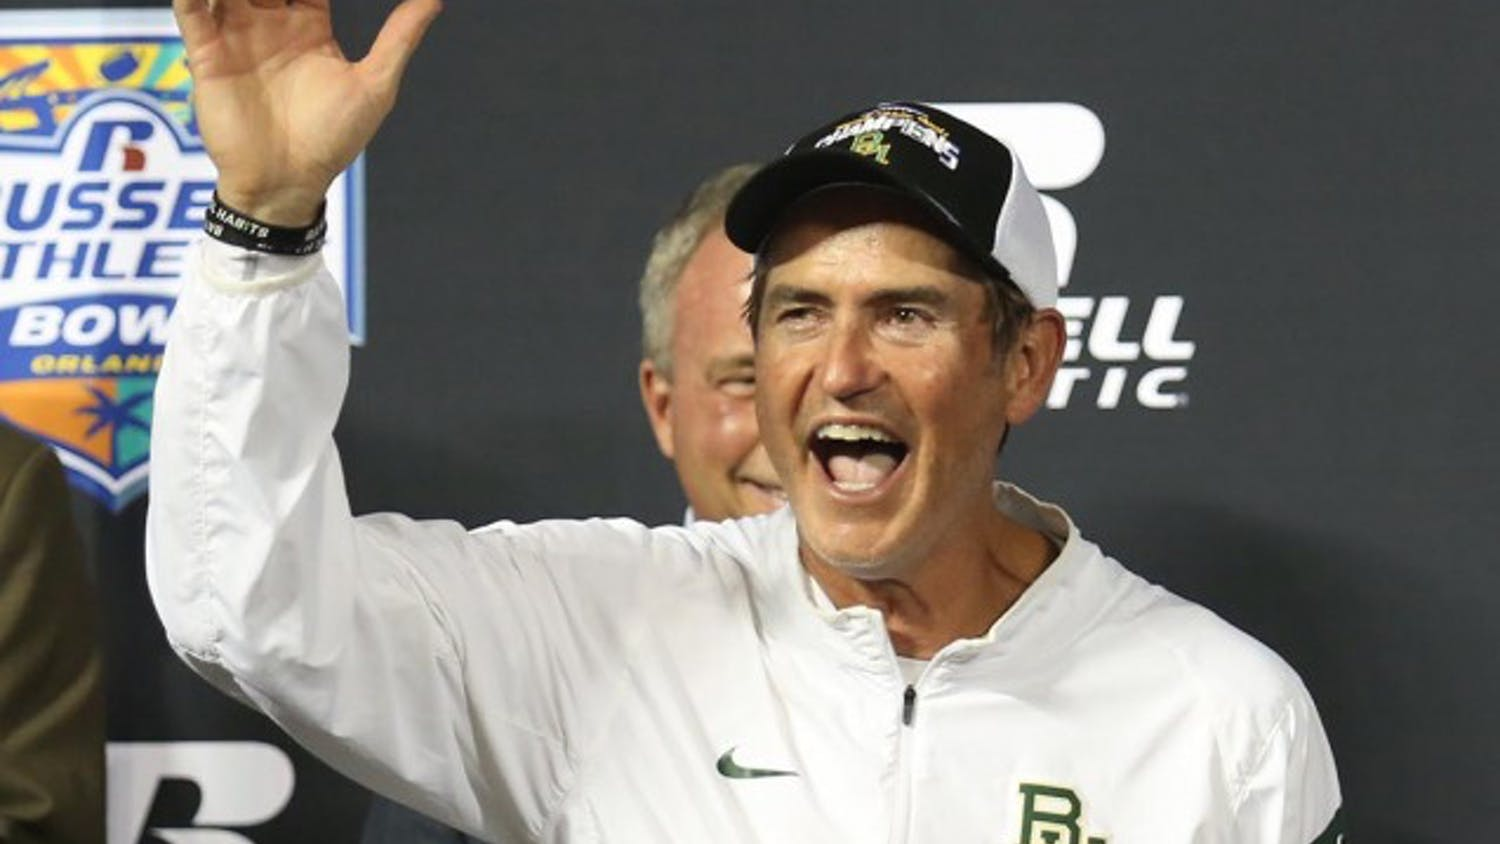 Baylor head coach Art Briles celebrates after winning the Russell Athletic Bowl on Tuesday, Dec. 29, 2015, at the Orlando Citrus Bowl in Orlando, Fla. (Stephen M. Dowell/Orlando Sentinel/TNS)